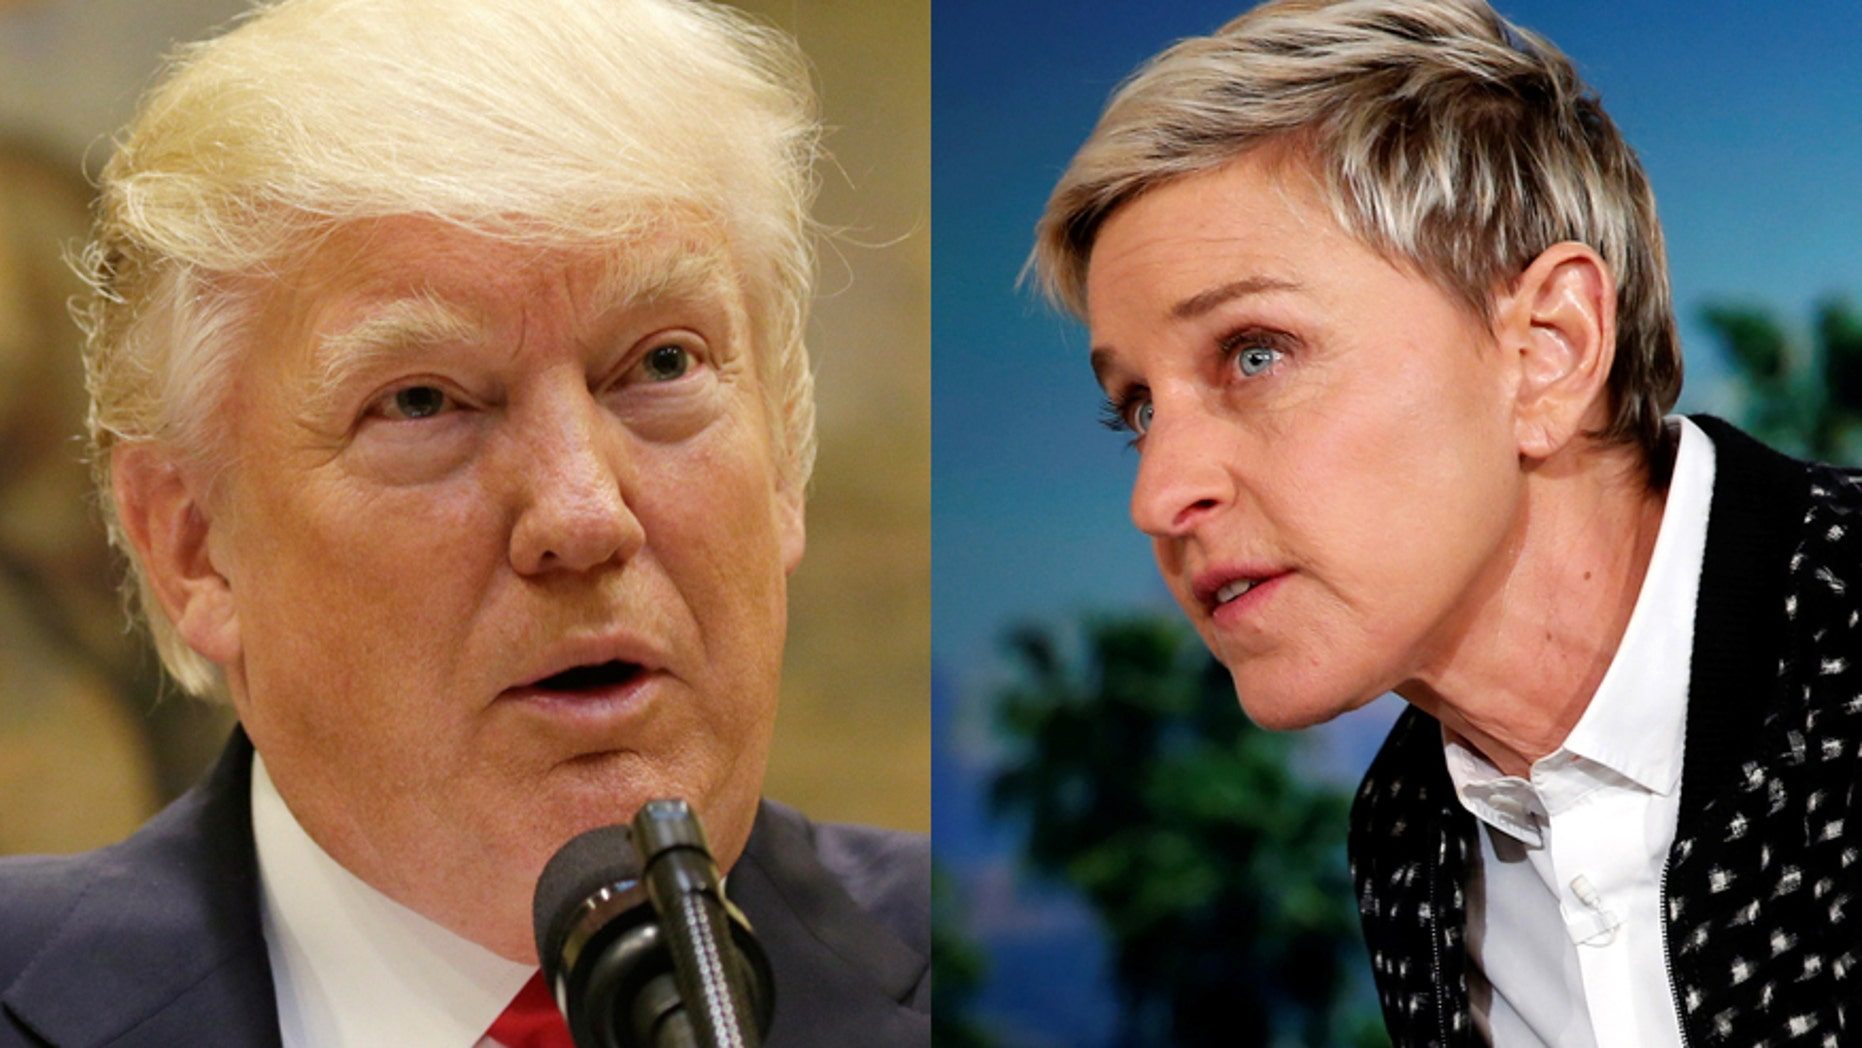 President Donald Trum (left) and talk show host Ellen Degeneres.